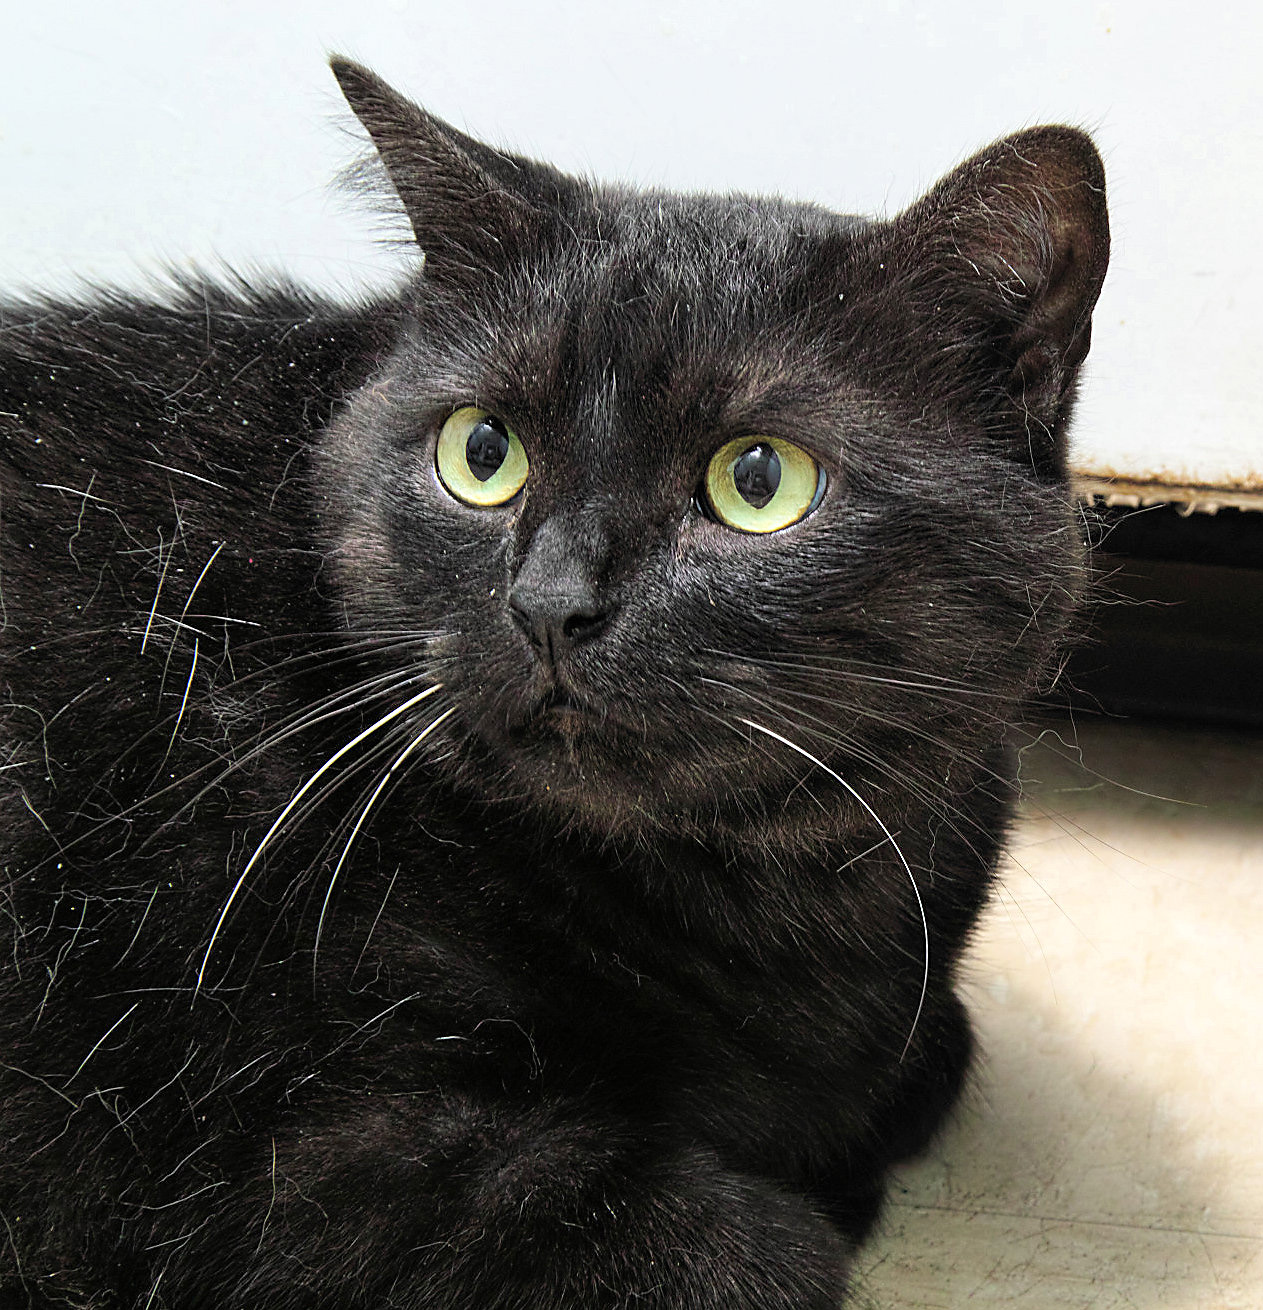 Zoey is 8 years old and hasn't been at a shelter before--she is very shy and scared here. Even though HAWS makes her as comfortable as possible, it is not the same as being in her own home. She wants you to know that once you spend enough time with her she is very affectionate.